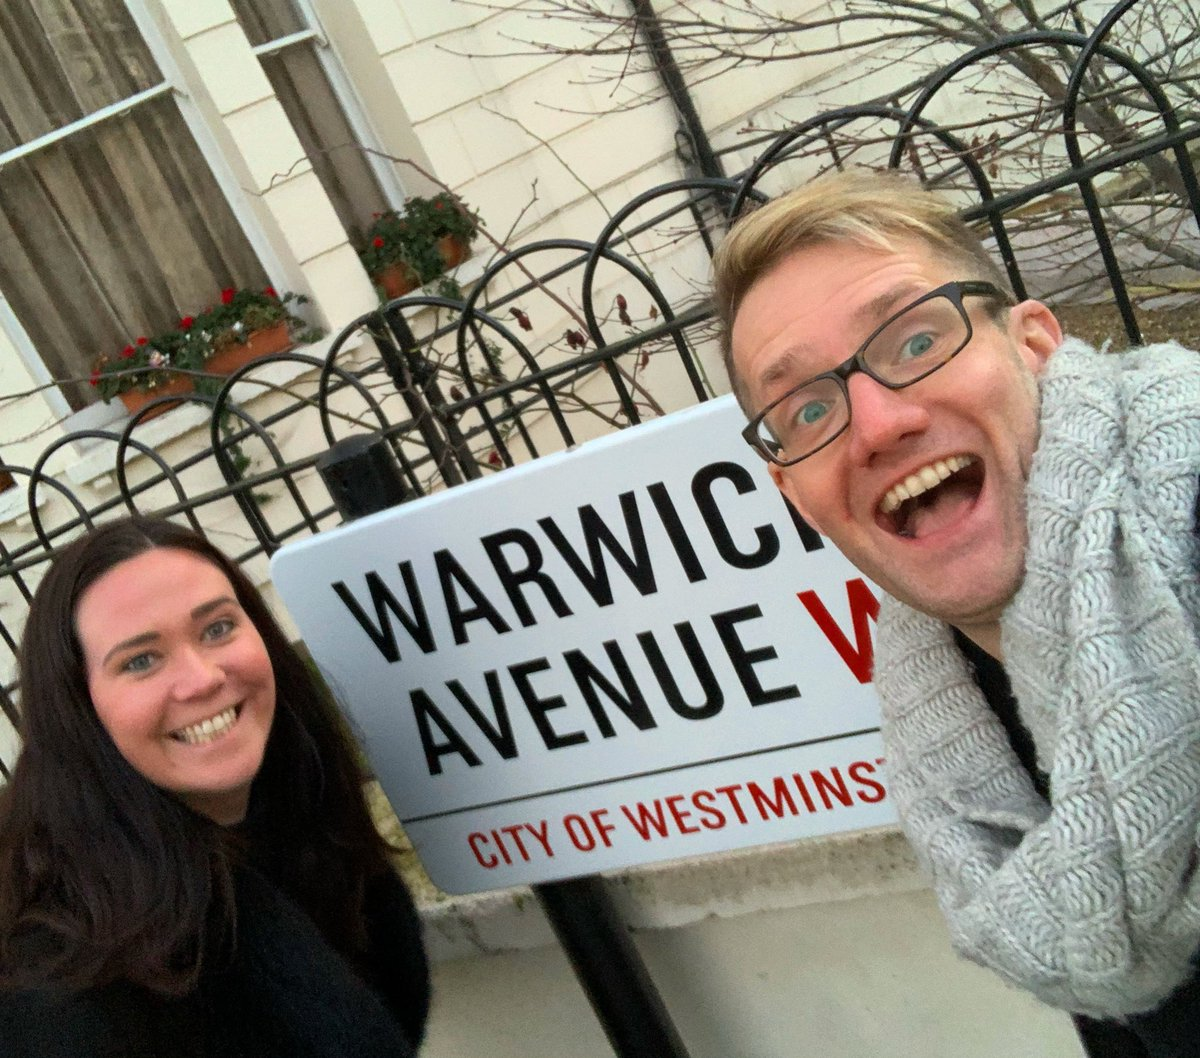 🎵 When I get to Warwick Avenue... I'll do what I normally do with @CBrosnanSoprano and take a selfie. 🤣 Love working with this girl!  #warwickavenue #selfie #friends #touristinmyowncity